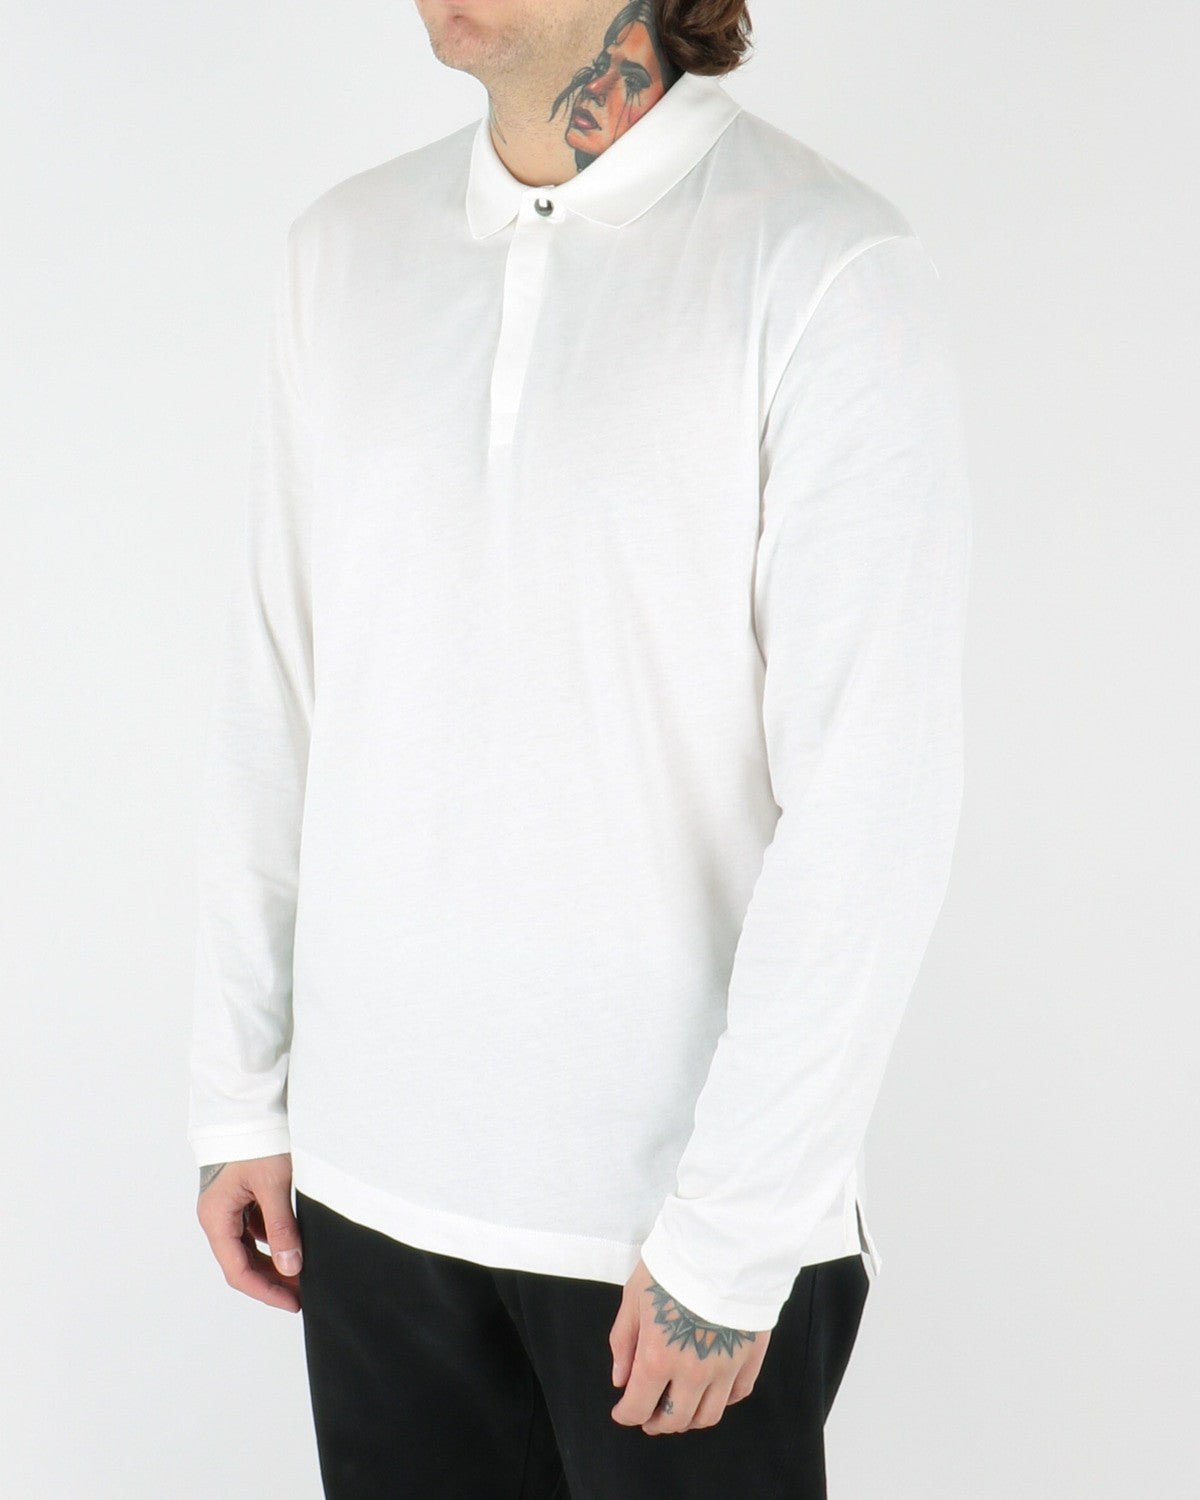 whyred_sun longsleeve_offwhite_view_2_2